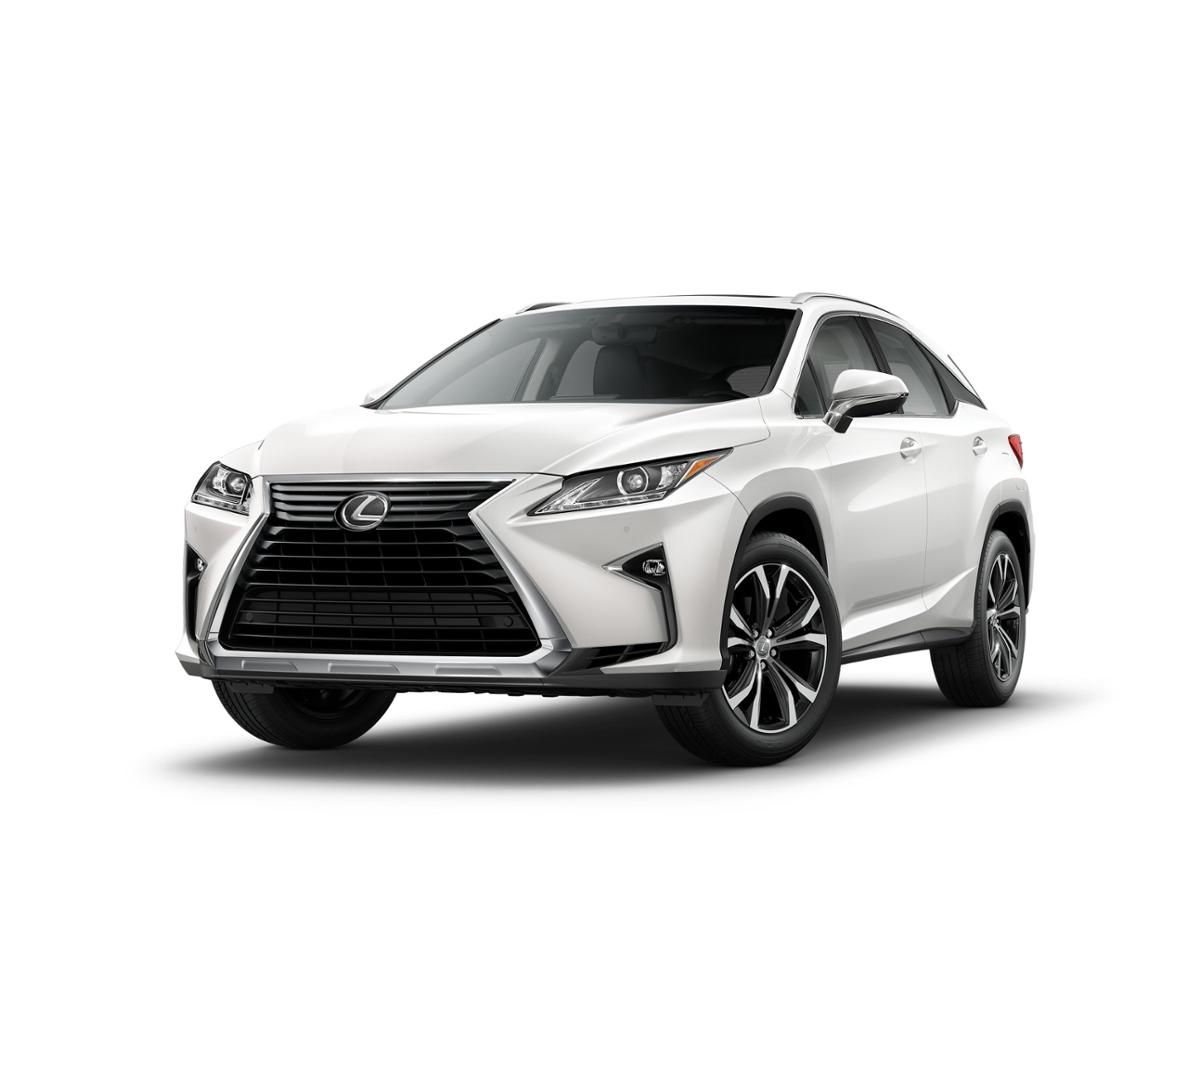 2018 Lexus RX 350 Vehicle Photo in El Monte, CA 91731